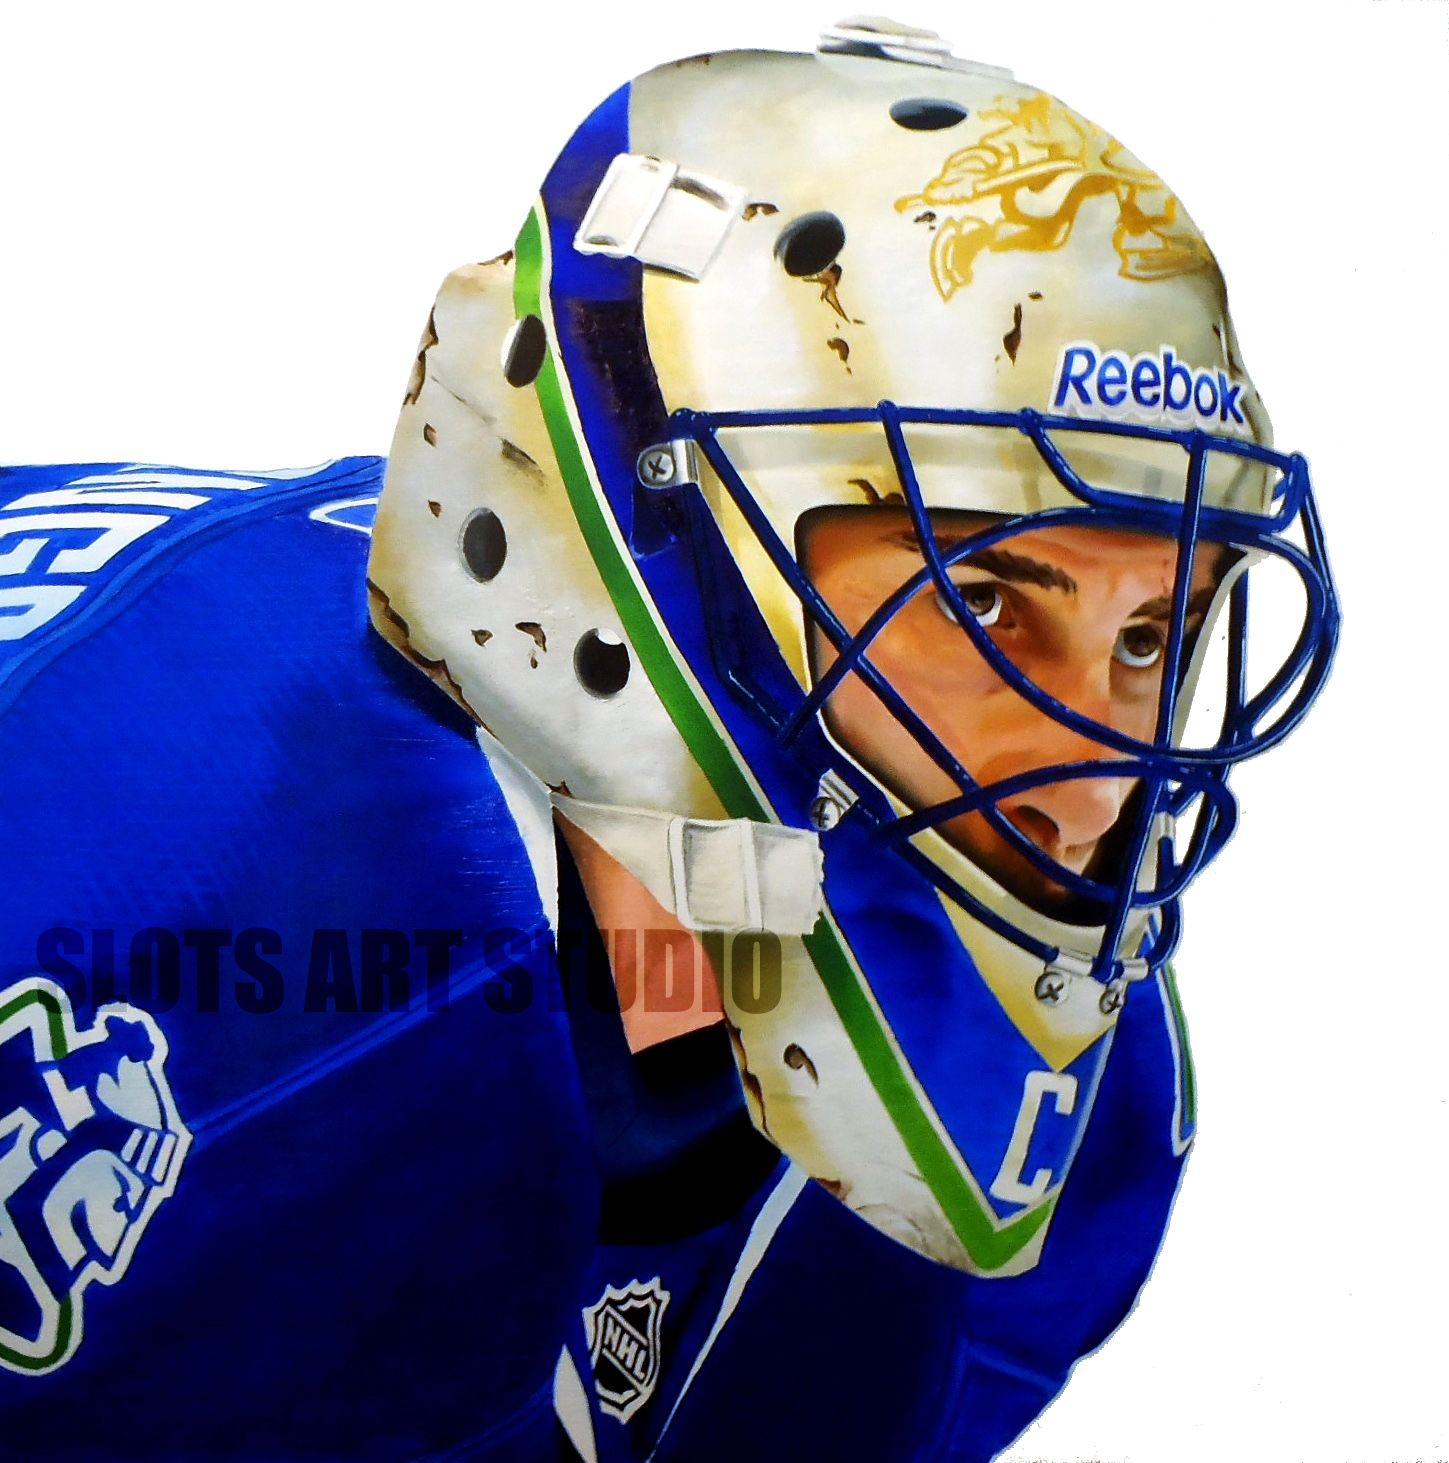 Captain Roberto Luongo A Huge Honour For A Goalie To Achieve It